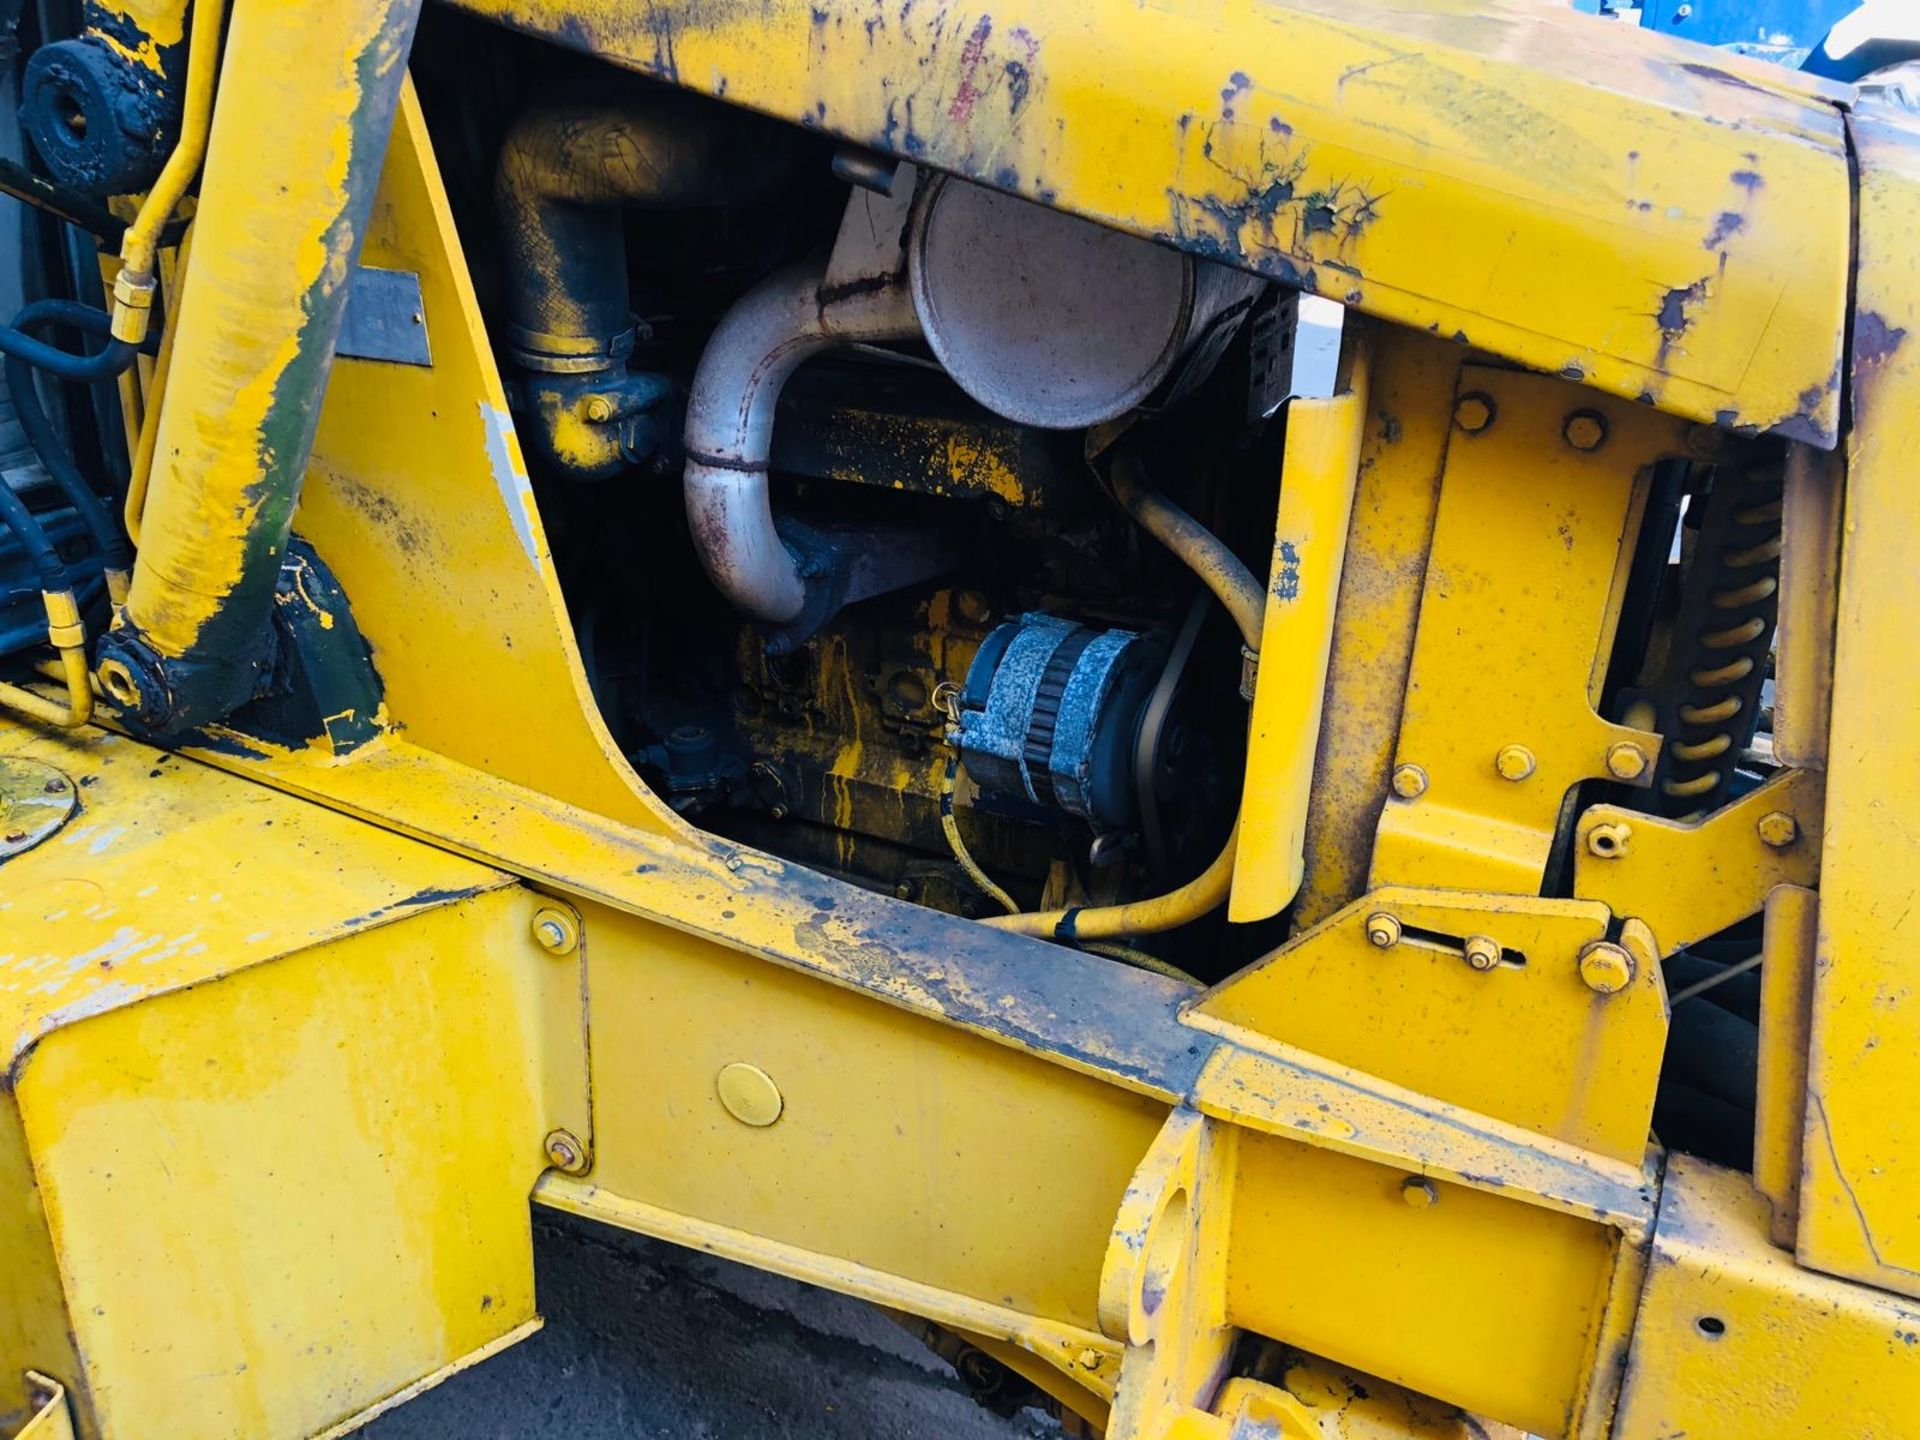 JCB 3CX PROJECT 8 DIGGER, 4X4, EXTRA DIG, C/W 3 BUCKETS, HOURS FROM NEW 7434 ONLY *NO VAT* - Image 11 of 16